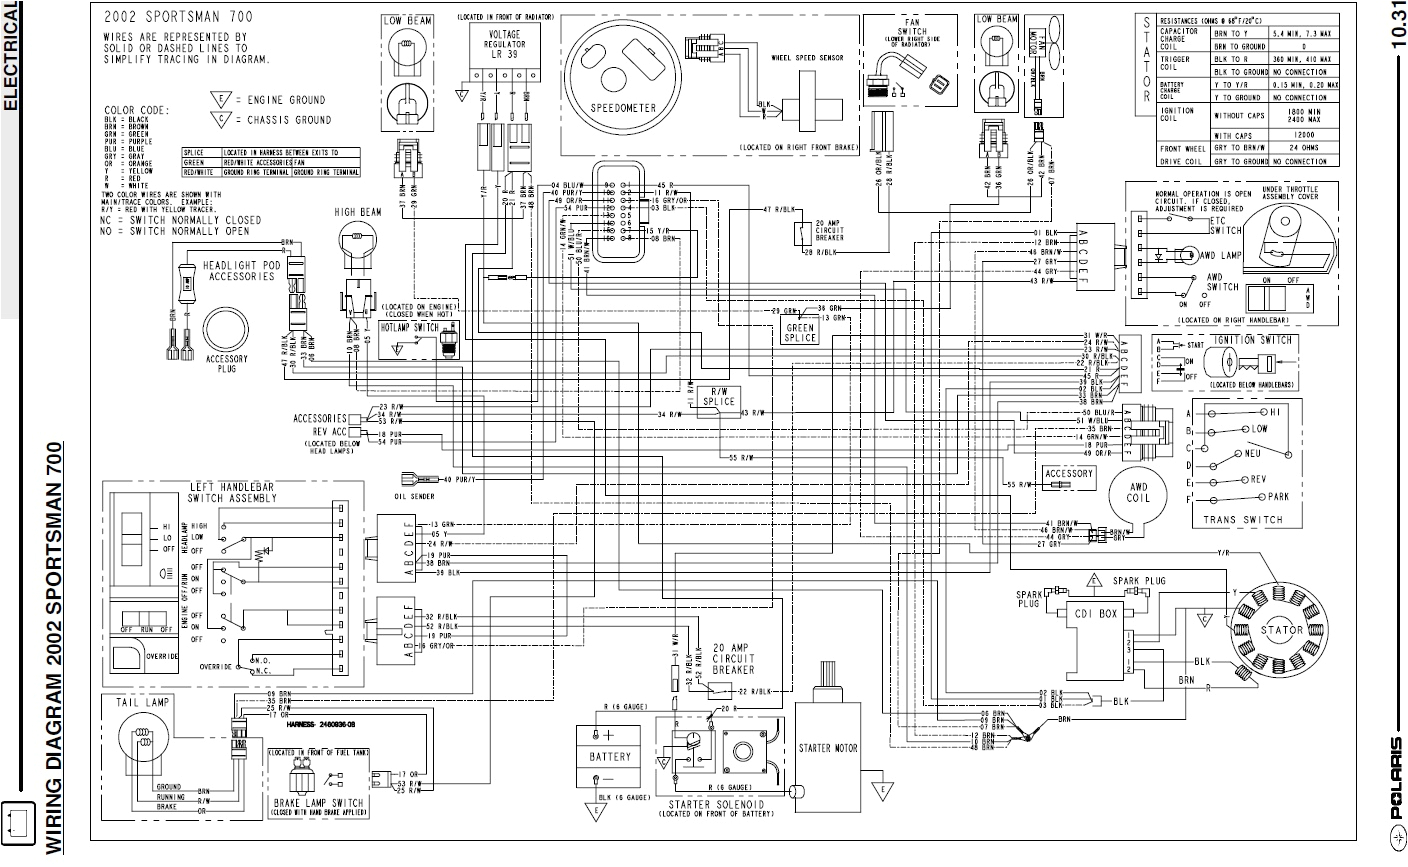 2005 Polaris Ranger Wiring Diagram 54k54d 3 Way Switch Wiring Polaris Sportsman 90 Wiring